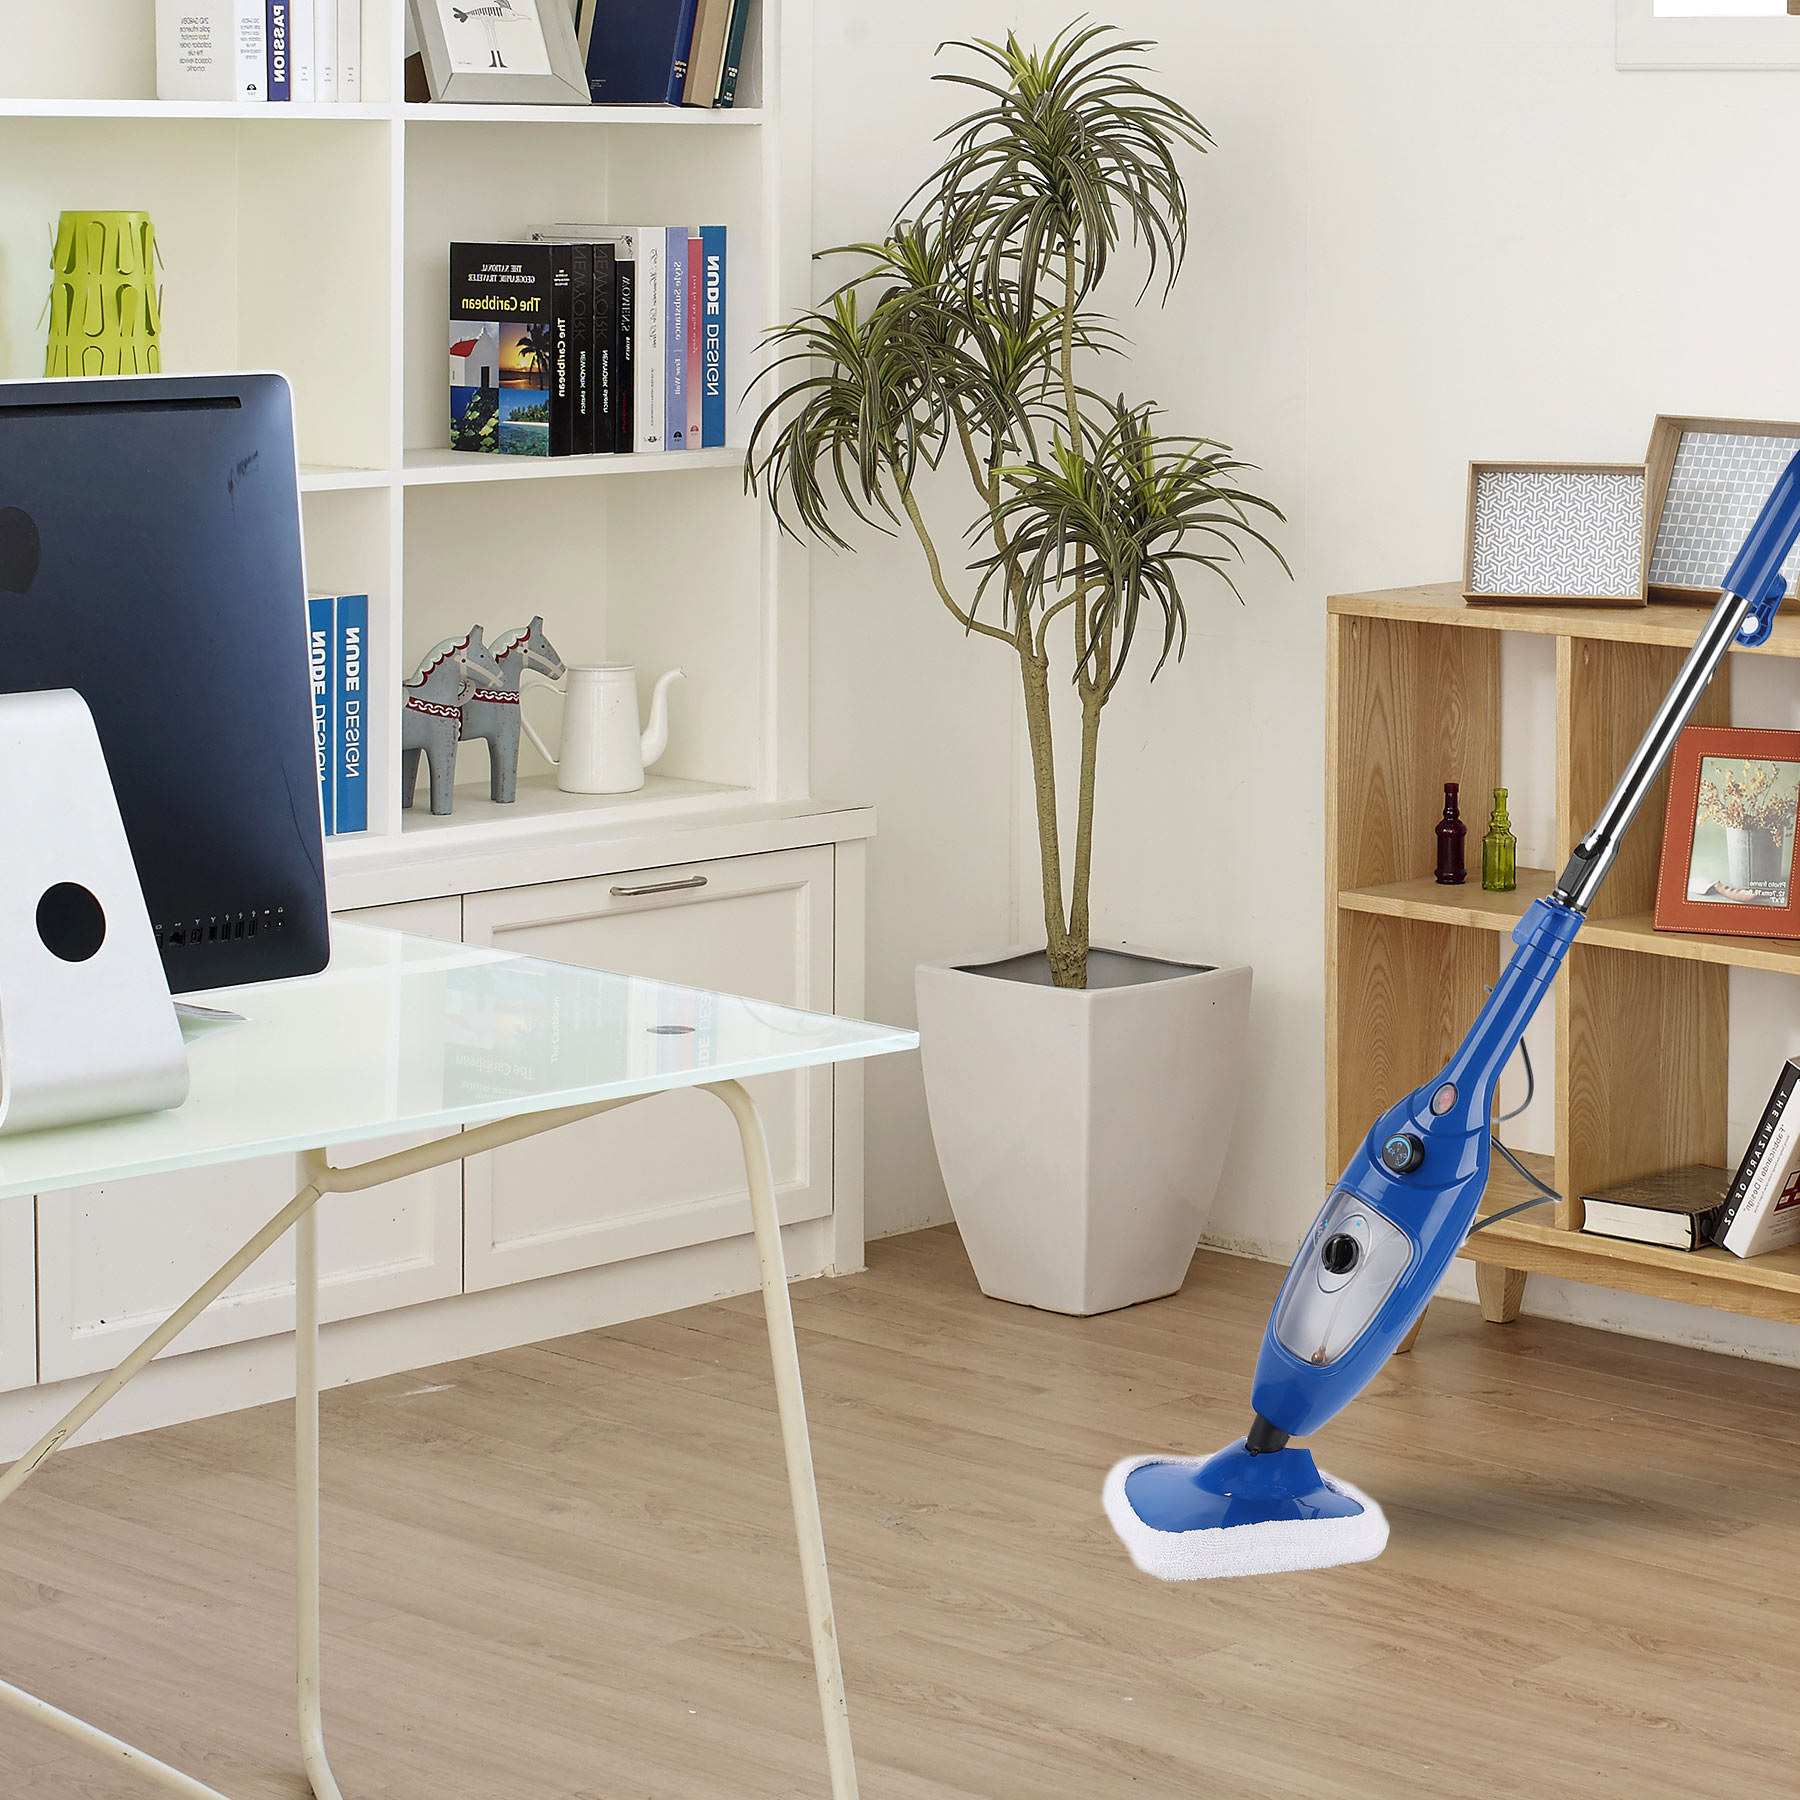 Steam Mop for Floor Cleaning with 16FT Cord 12Oz Water Tank